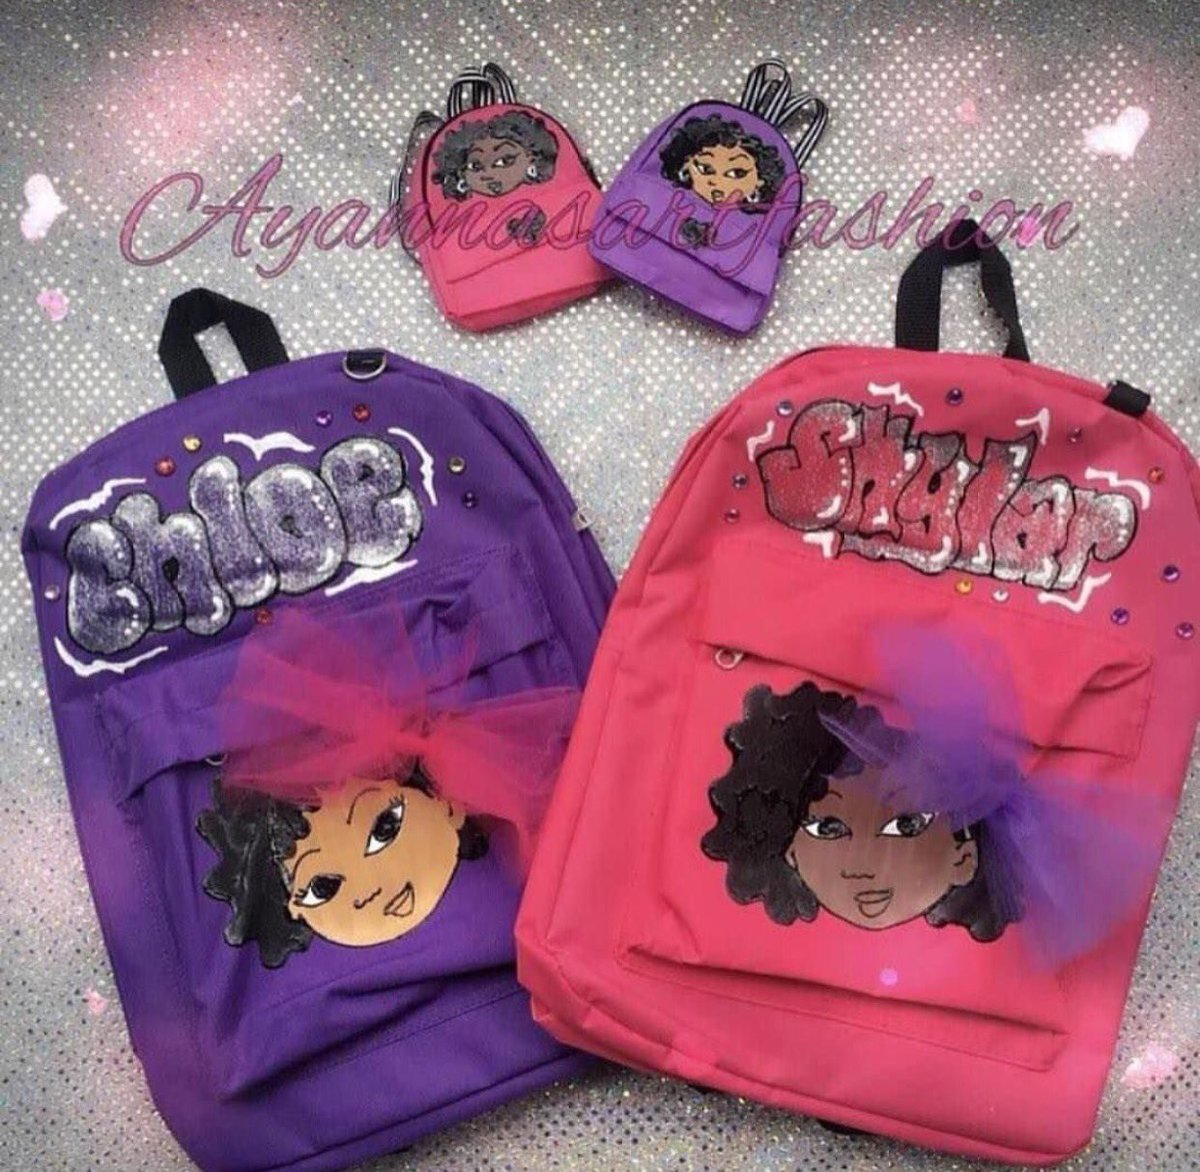 School will be back in session before you know it  custombackpack   blackgirlmagicpic.twitter.com YNBIbbjCp3 c105d880bad4d